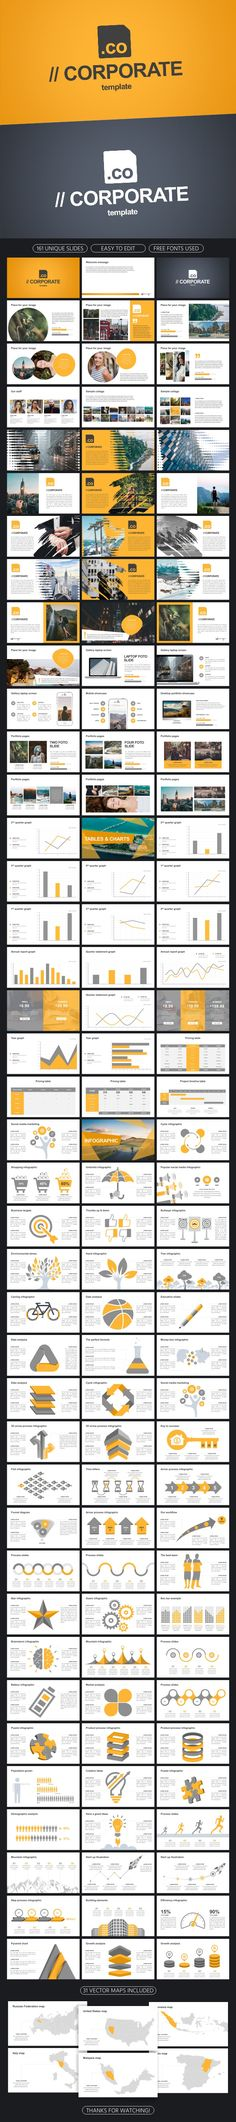 Corporate Powerpoint Template - 161 Professional Slides